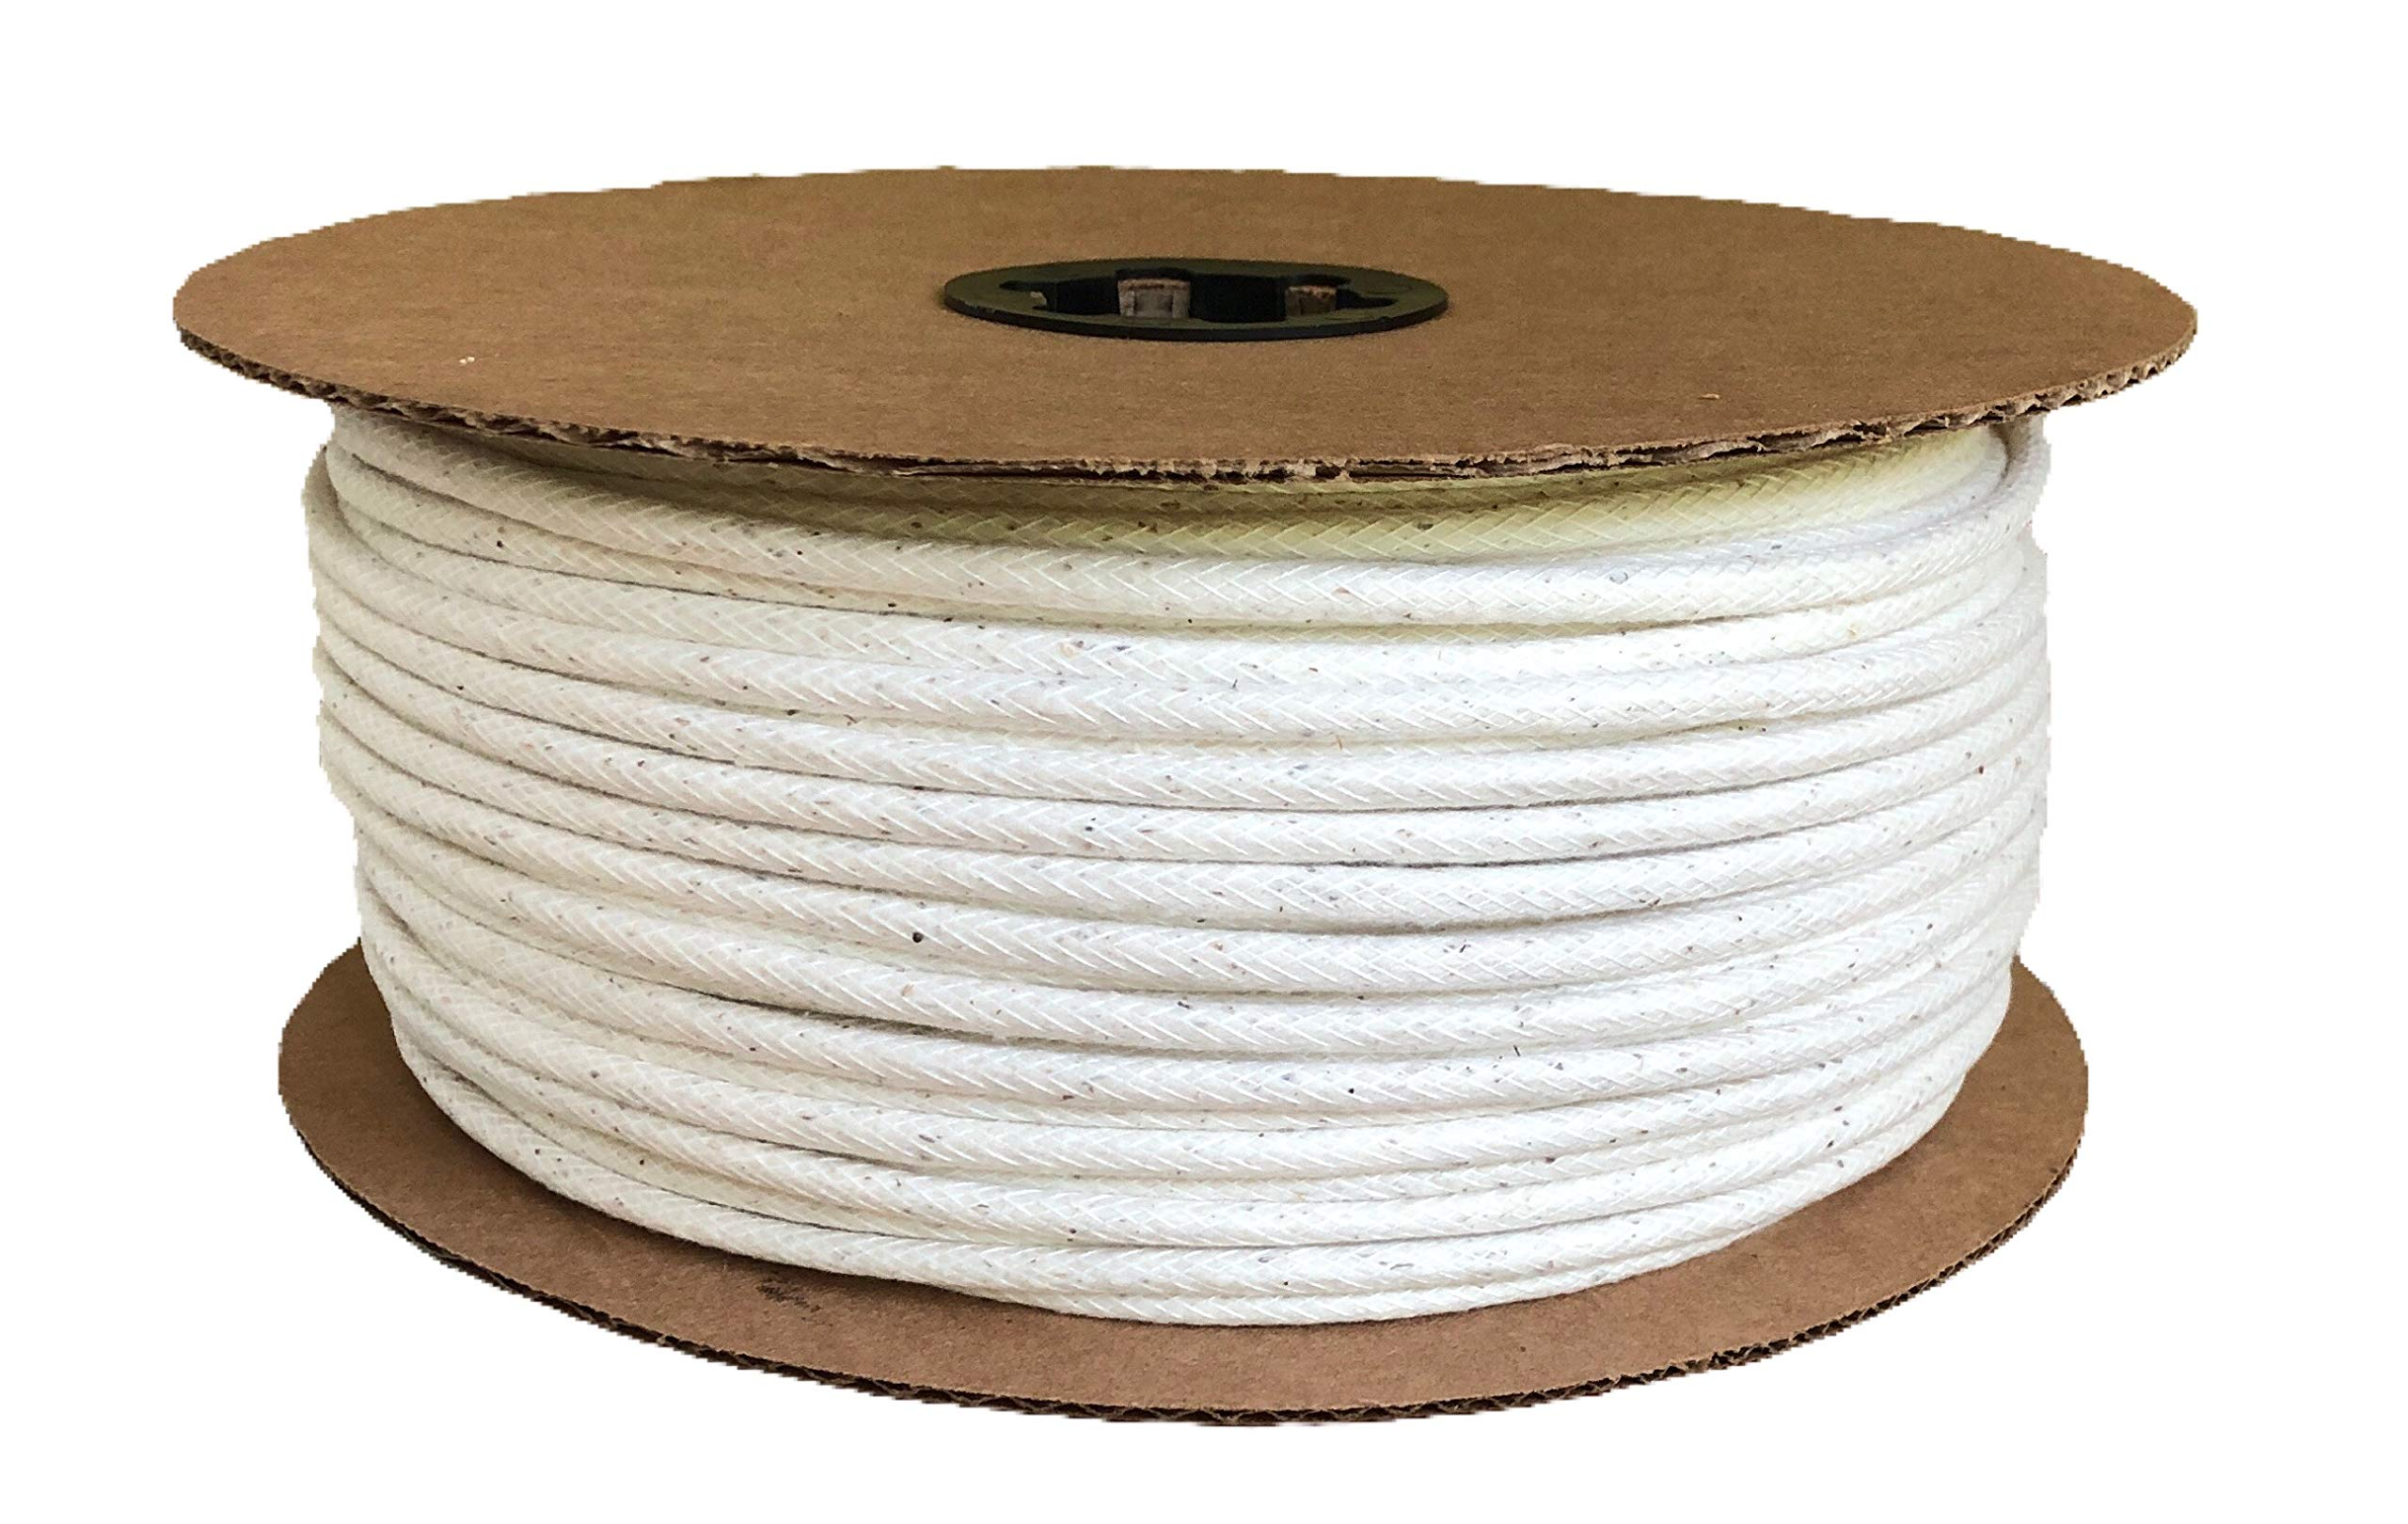 USA Cotton Piping Welt Cord All Sizes (#2[1/4''] 200 Yards) by Great Lakes Cordage